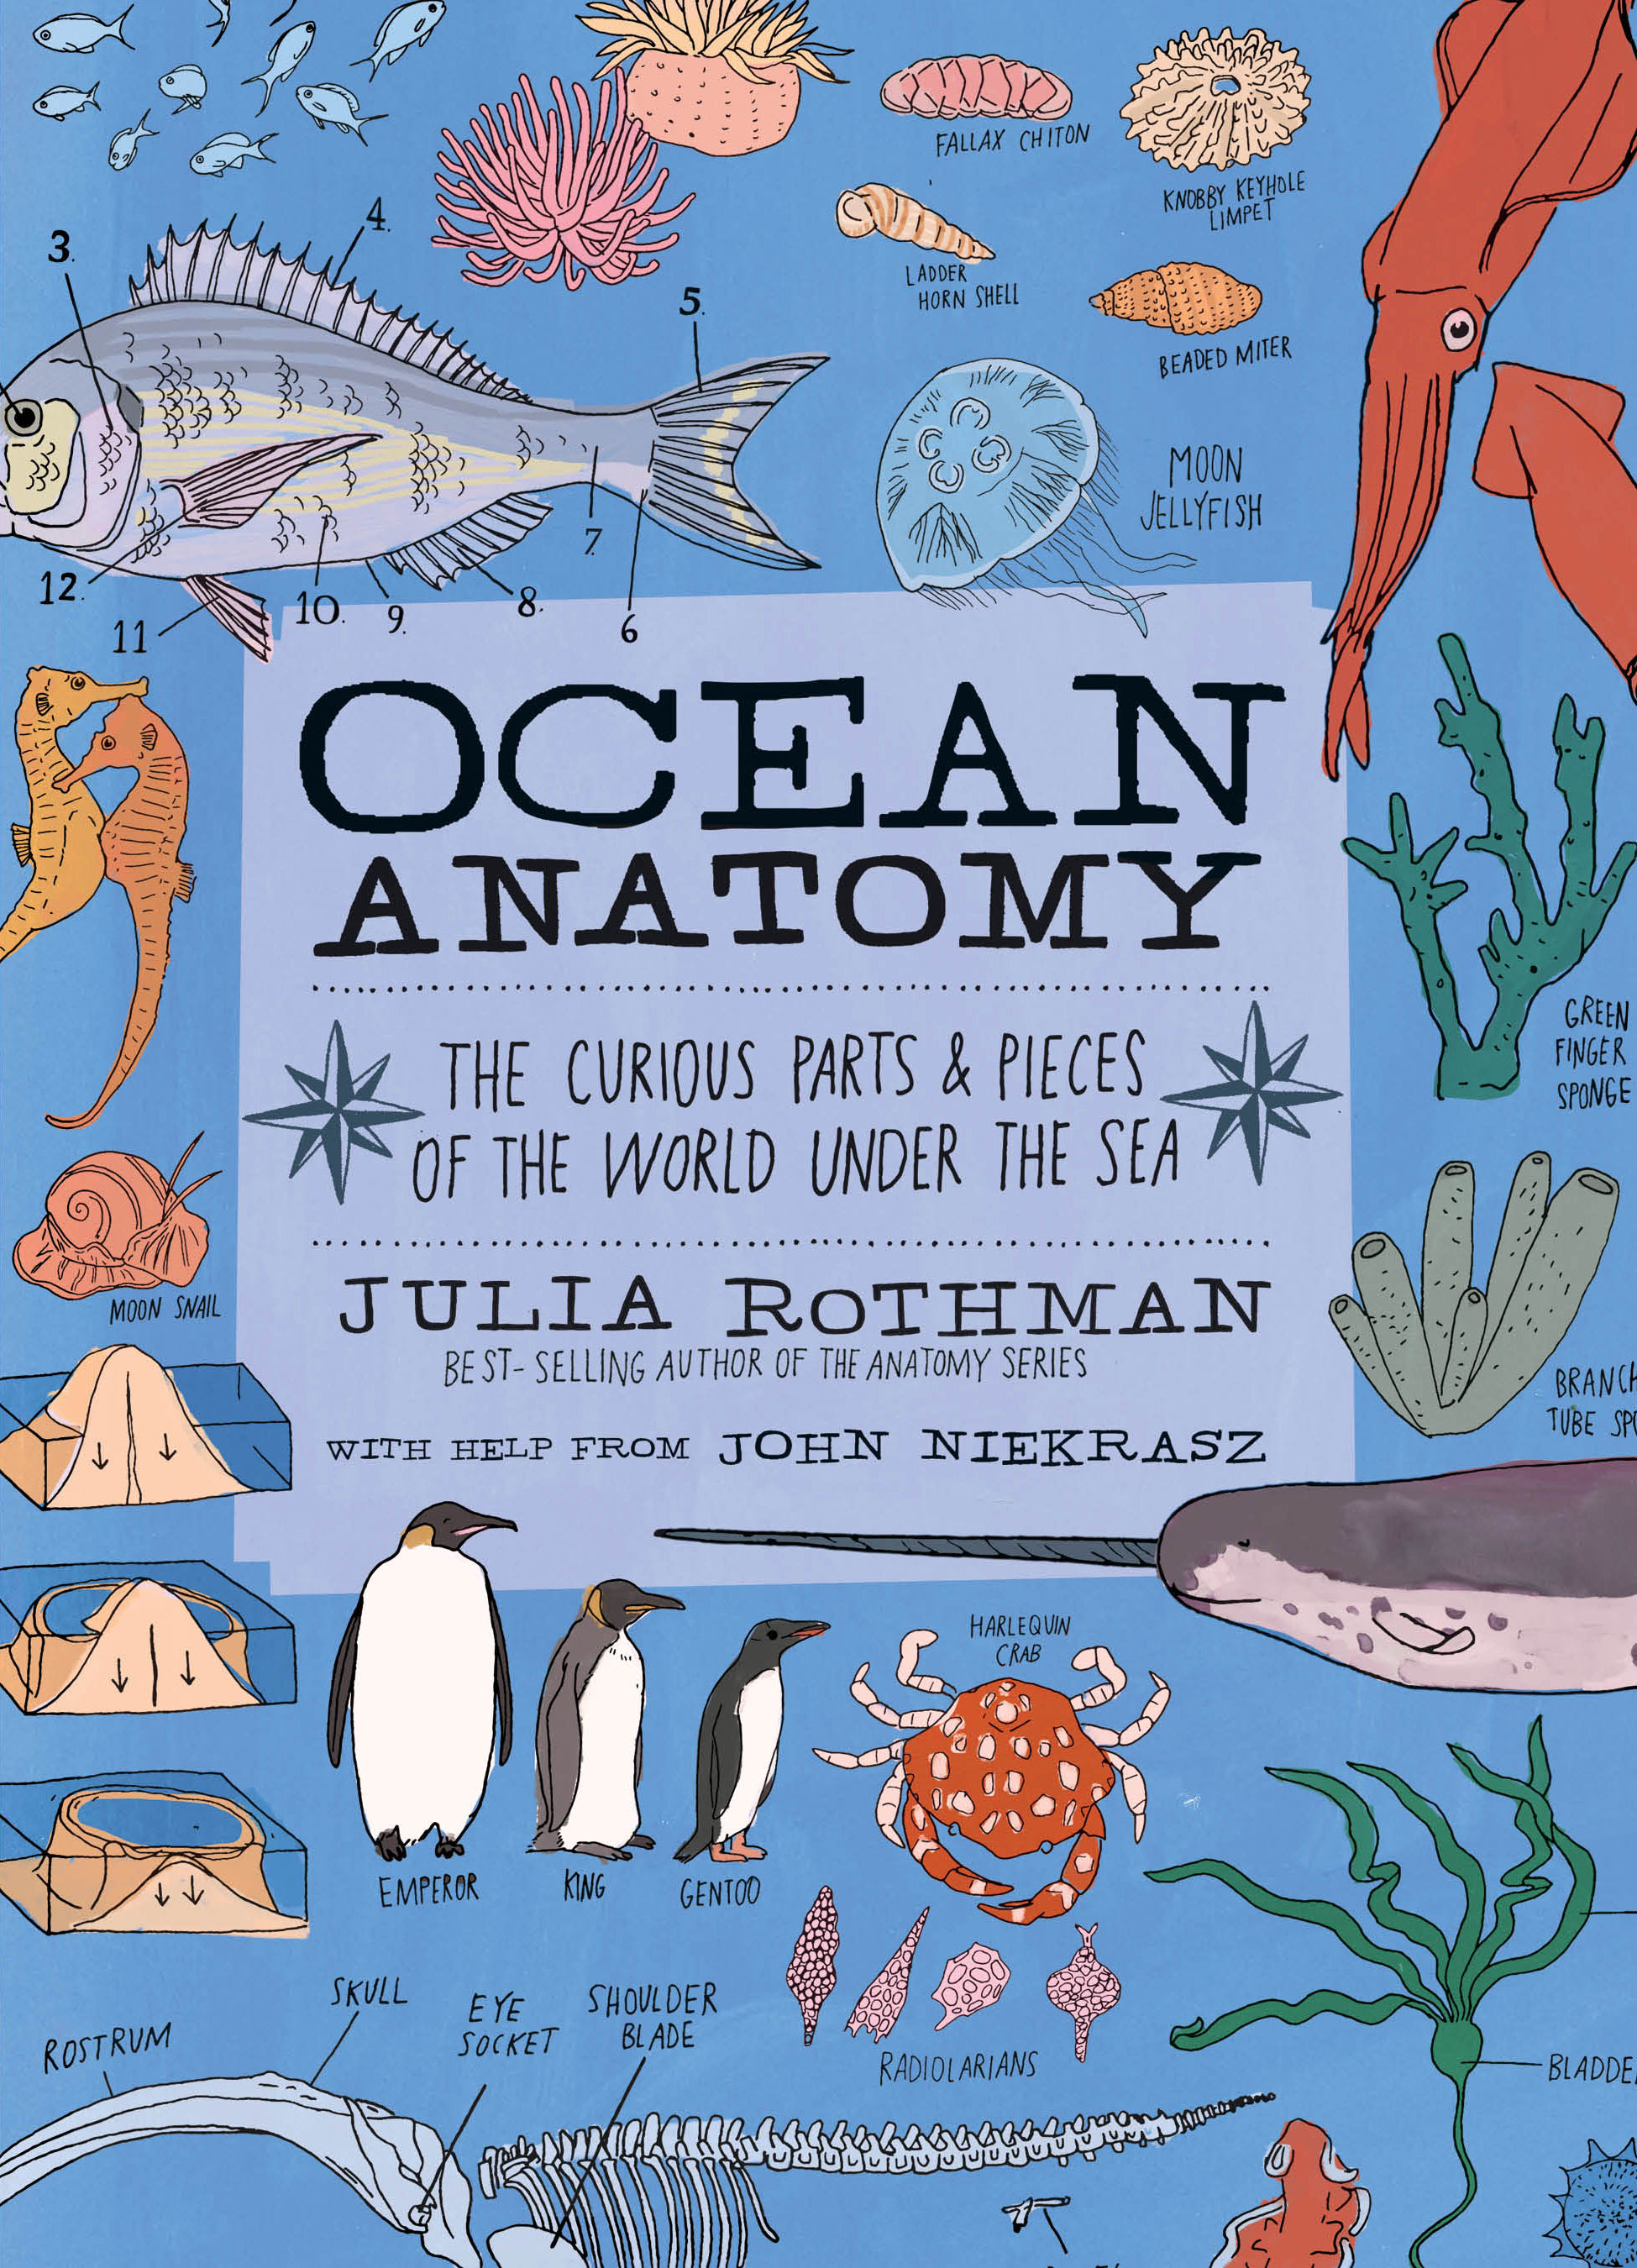 Ocean Anatomy The Curious Parts & Pieces of the World under the Sea - Julia Rothman